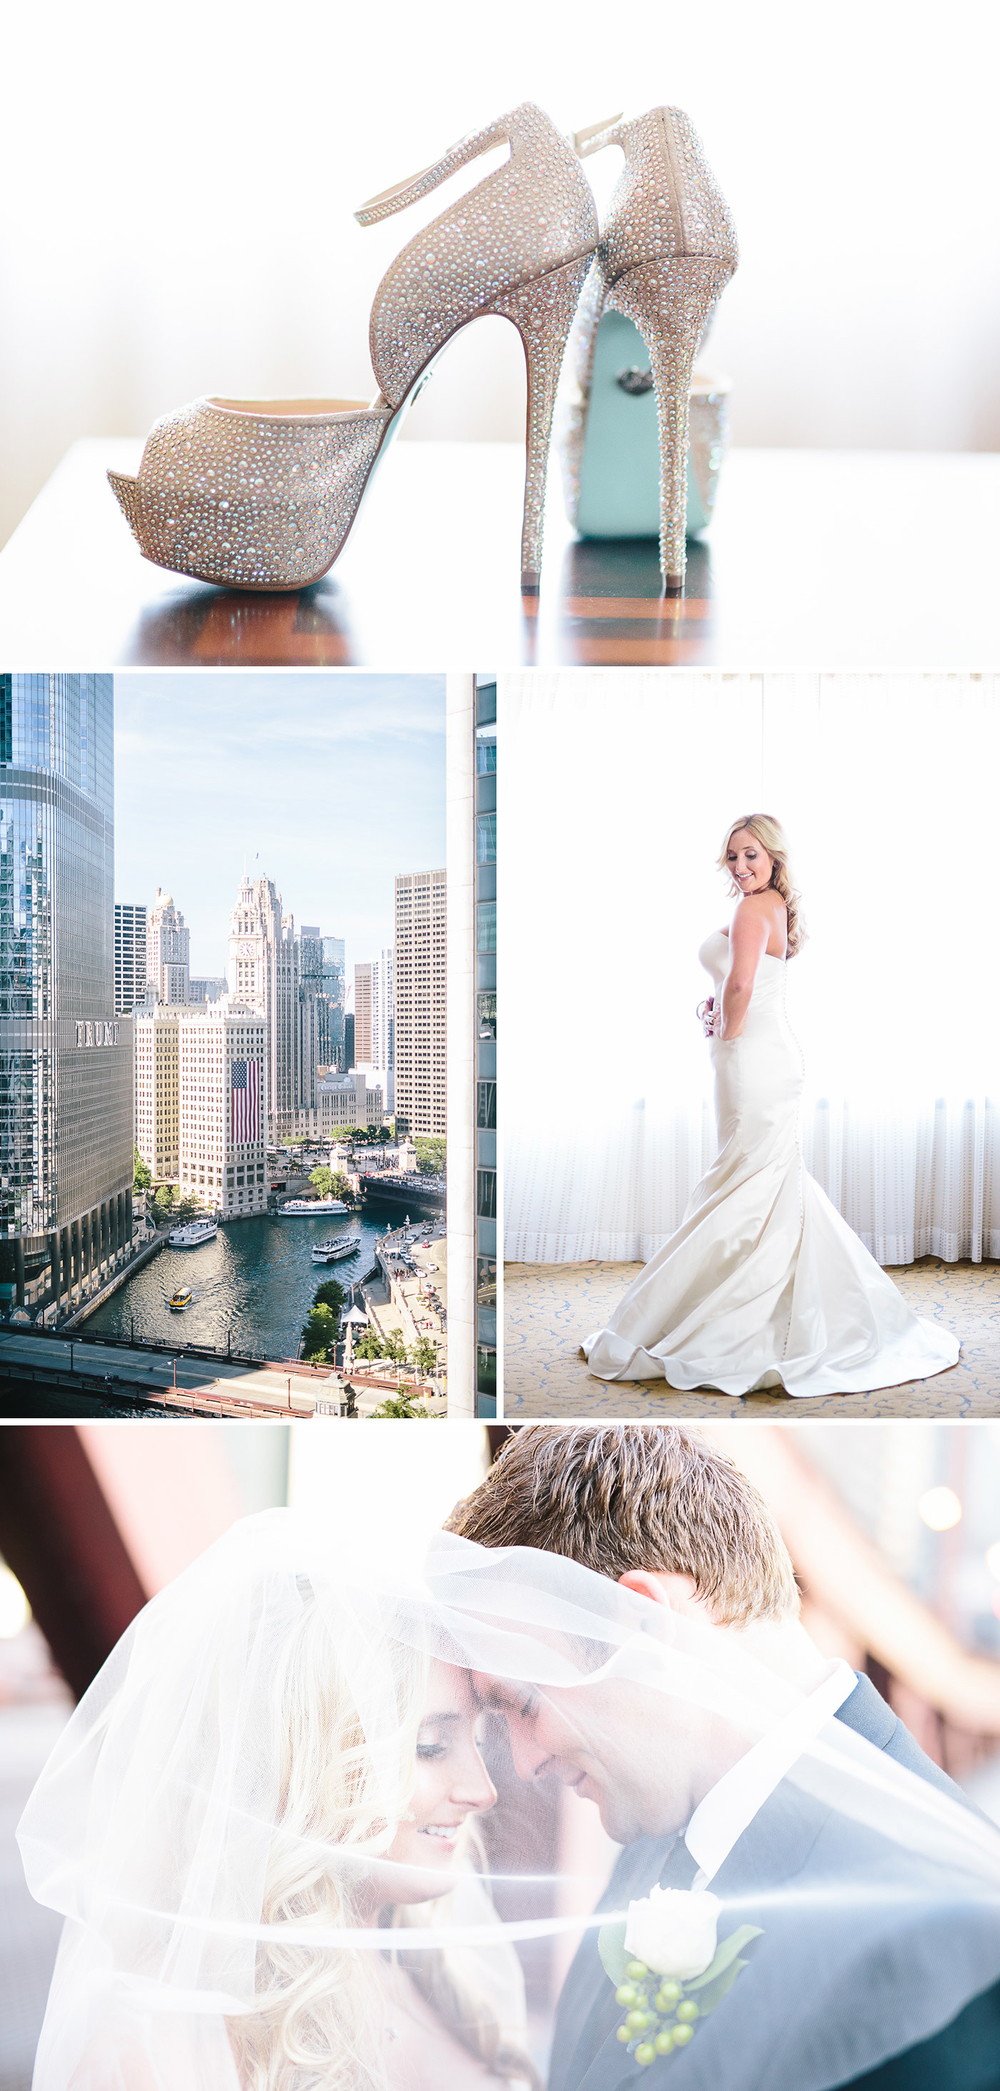 Chicago_Fine_Art_Wedding_Photography_kline.jpg